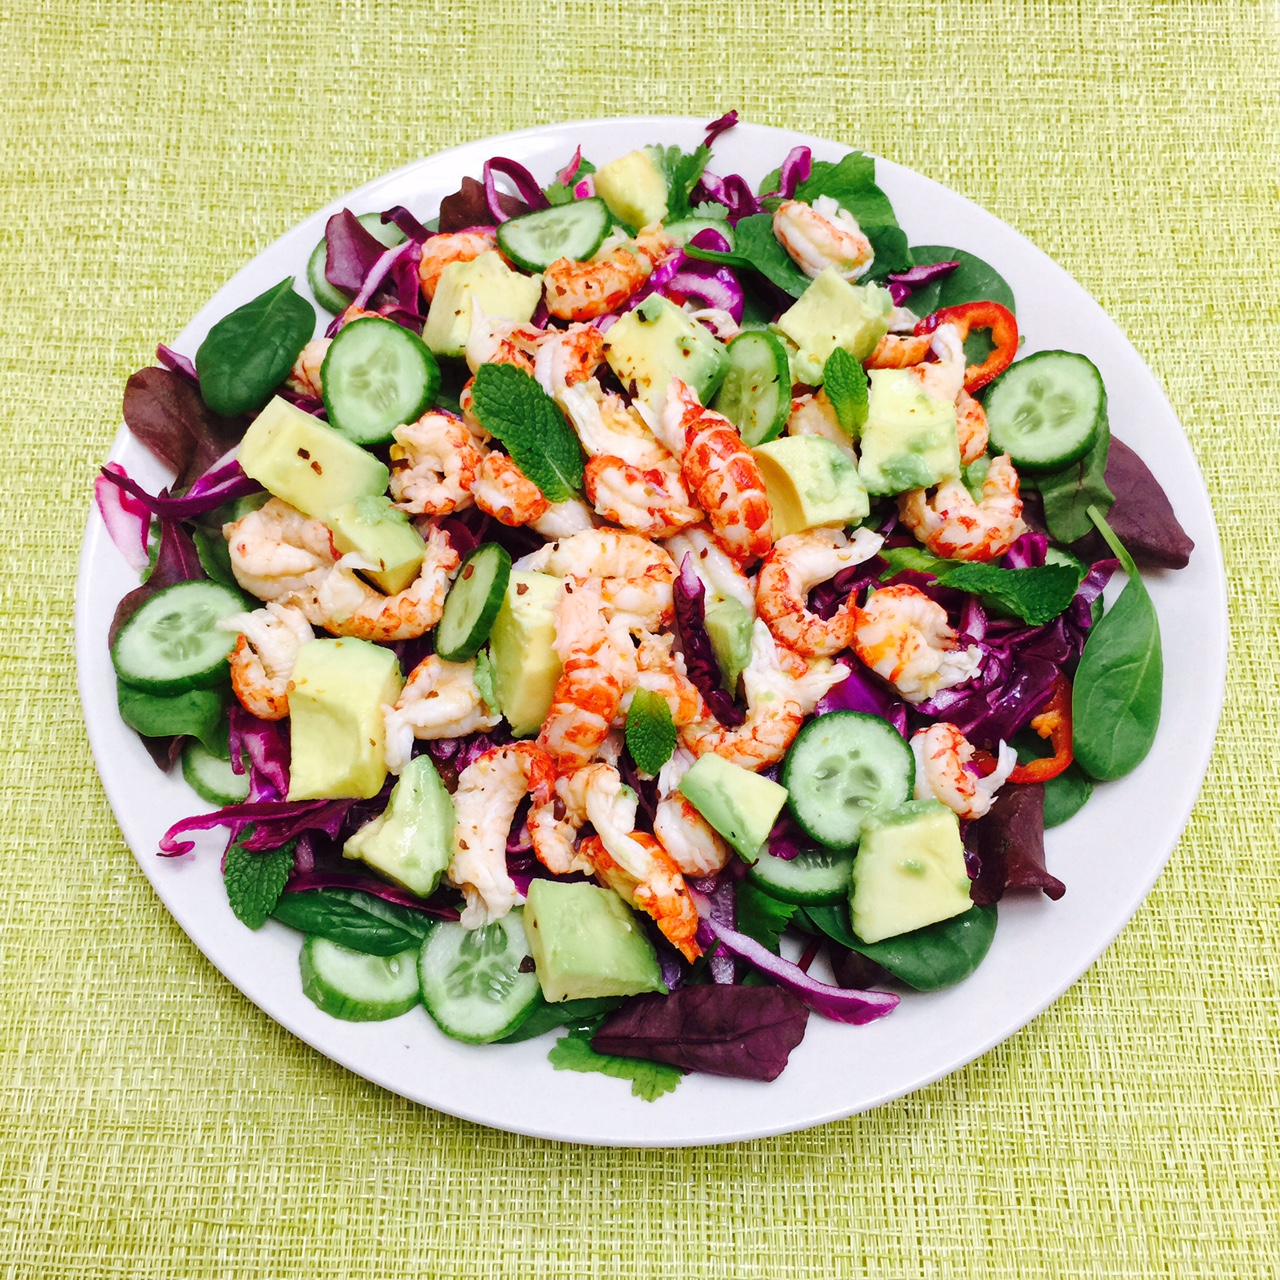 Crayfish salad with avocado, red cabbage and cucumber